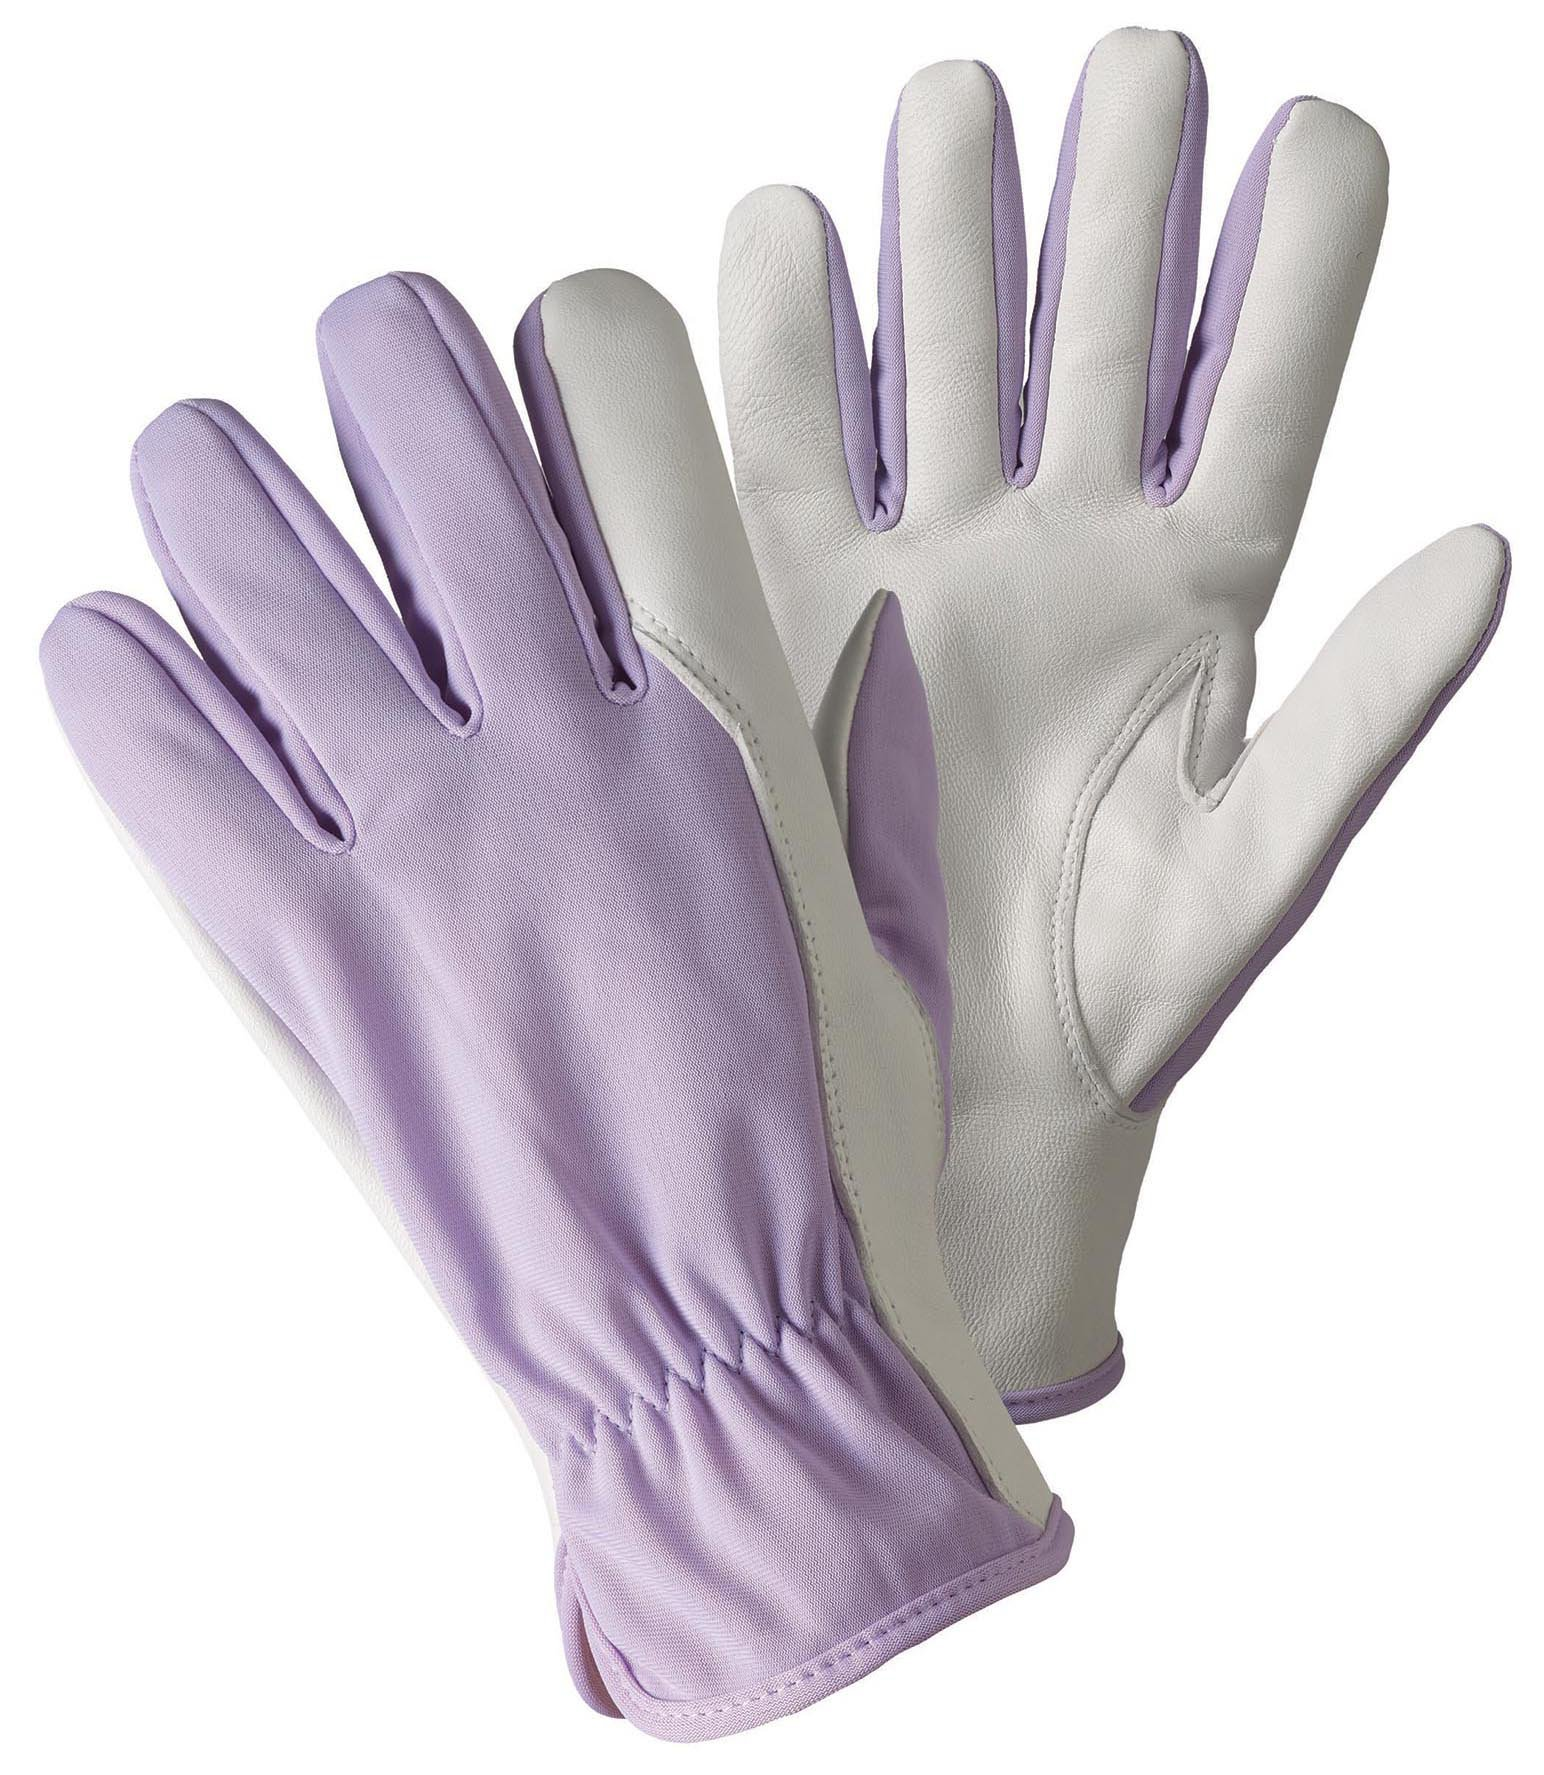 Briers Super Soft and Strong Leather Gardening Gloves